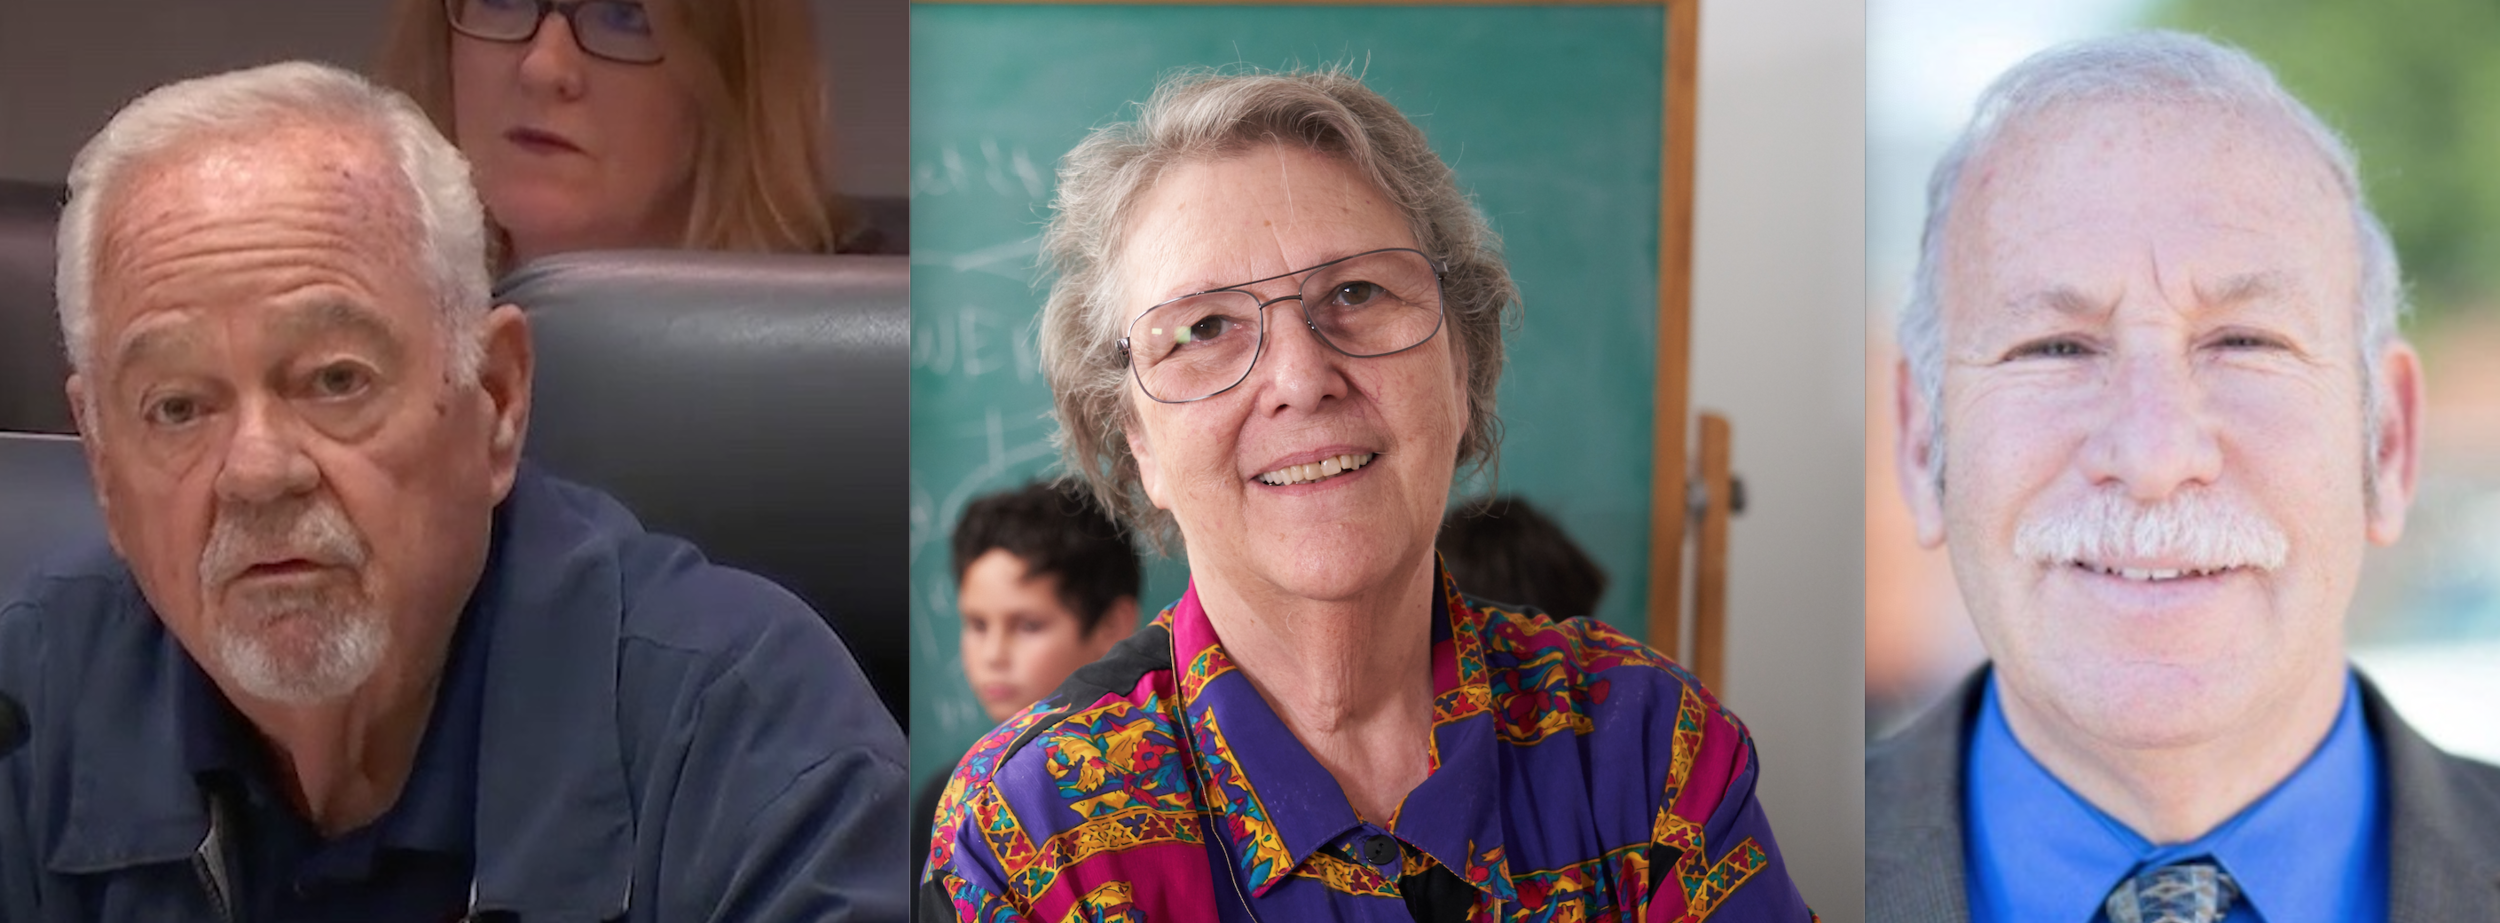 Board President Richard Vladovic (BD7) and Board Members Jackie Goldberg (BD5) and Scott Schmerelson (BD3) threatened to vote to shut down schools that LAUSD had recommended for approval unless they agreed to pay an unexpected bill sent days before the vote.